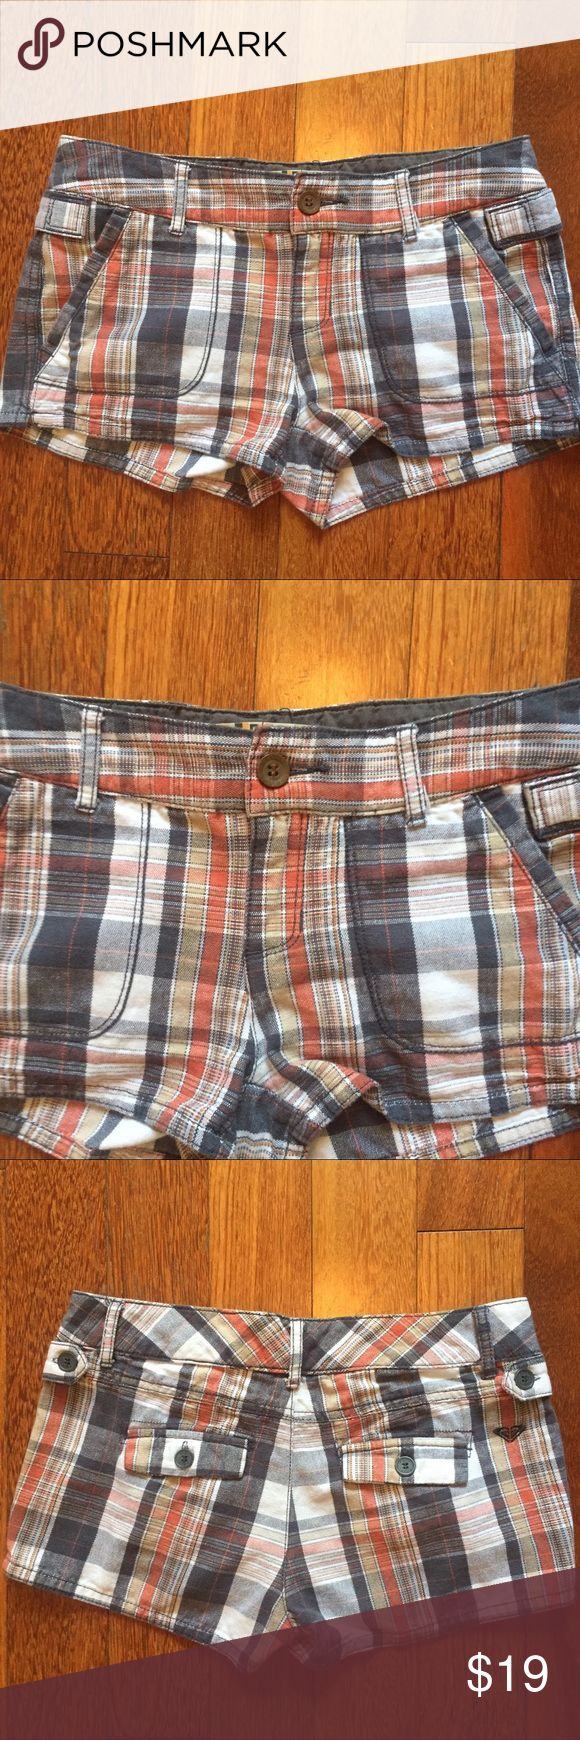 """Roxy size 0 plaid cotton Shorty Shorts Roxy cotton size 0 plaid cotton Shorty Shorts. Cute shorts with front and back pockets. Great neutral colors that go with anything. Waist measures across 14"""" inseam 2"""" and length from top of waist to bottom leg is 10.5"""" logo on back right. Cute shorts showing minor wear. Roxy Shorts"""